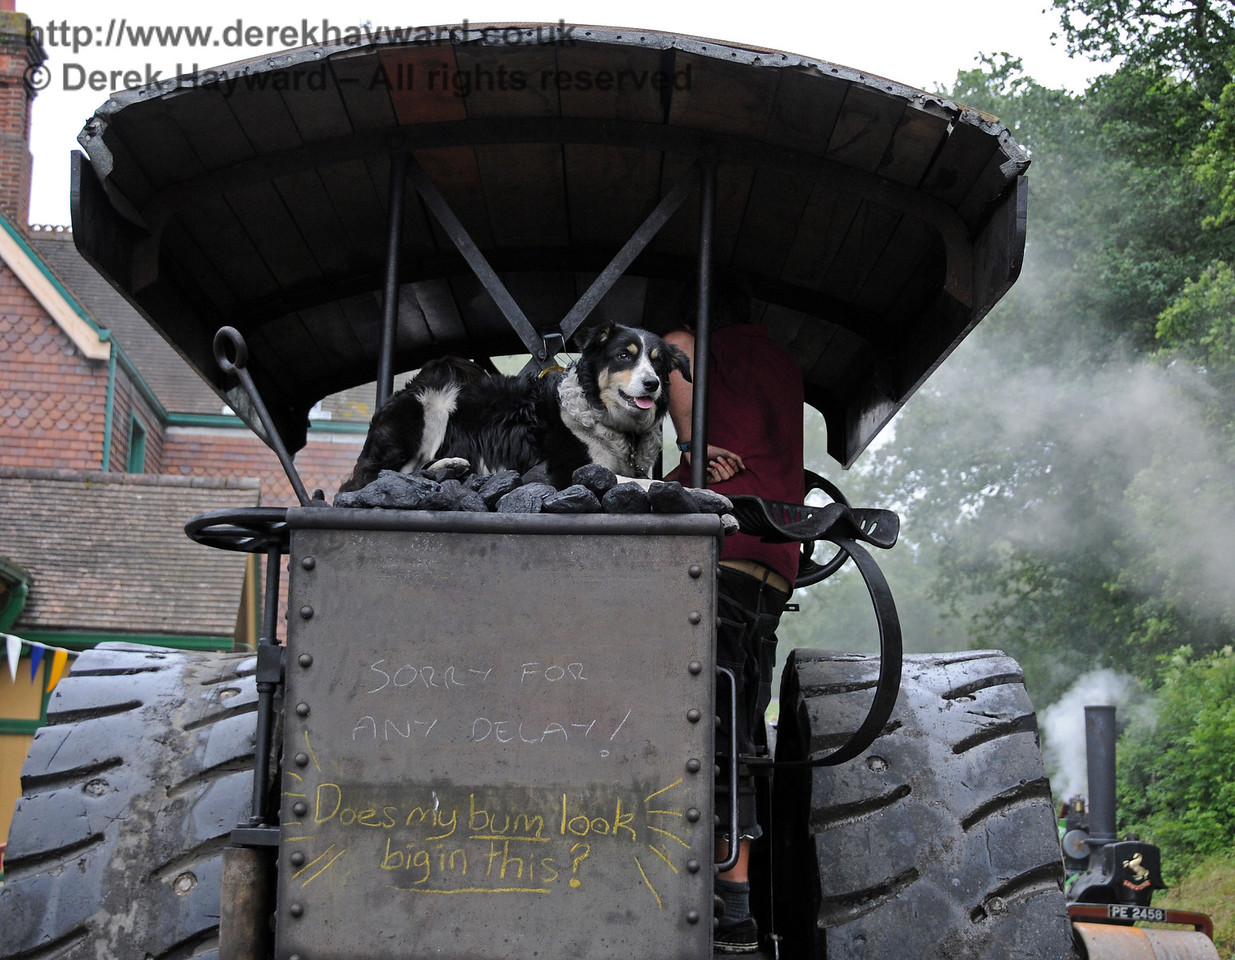 The dog was having great fun. Horsted Keynes 21.08.2010  4239